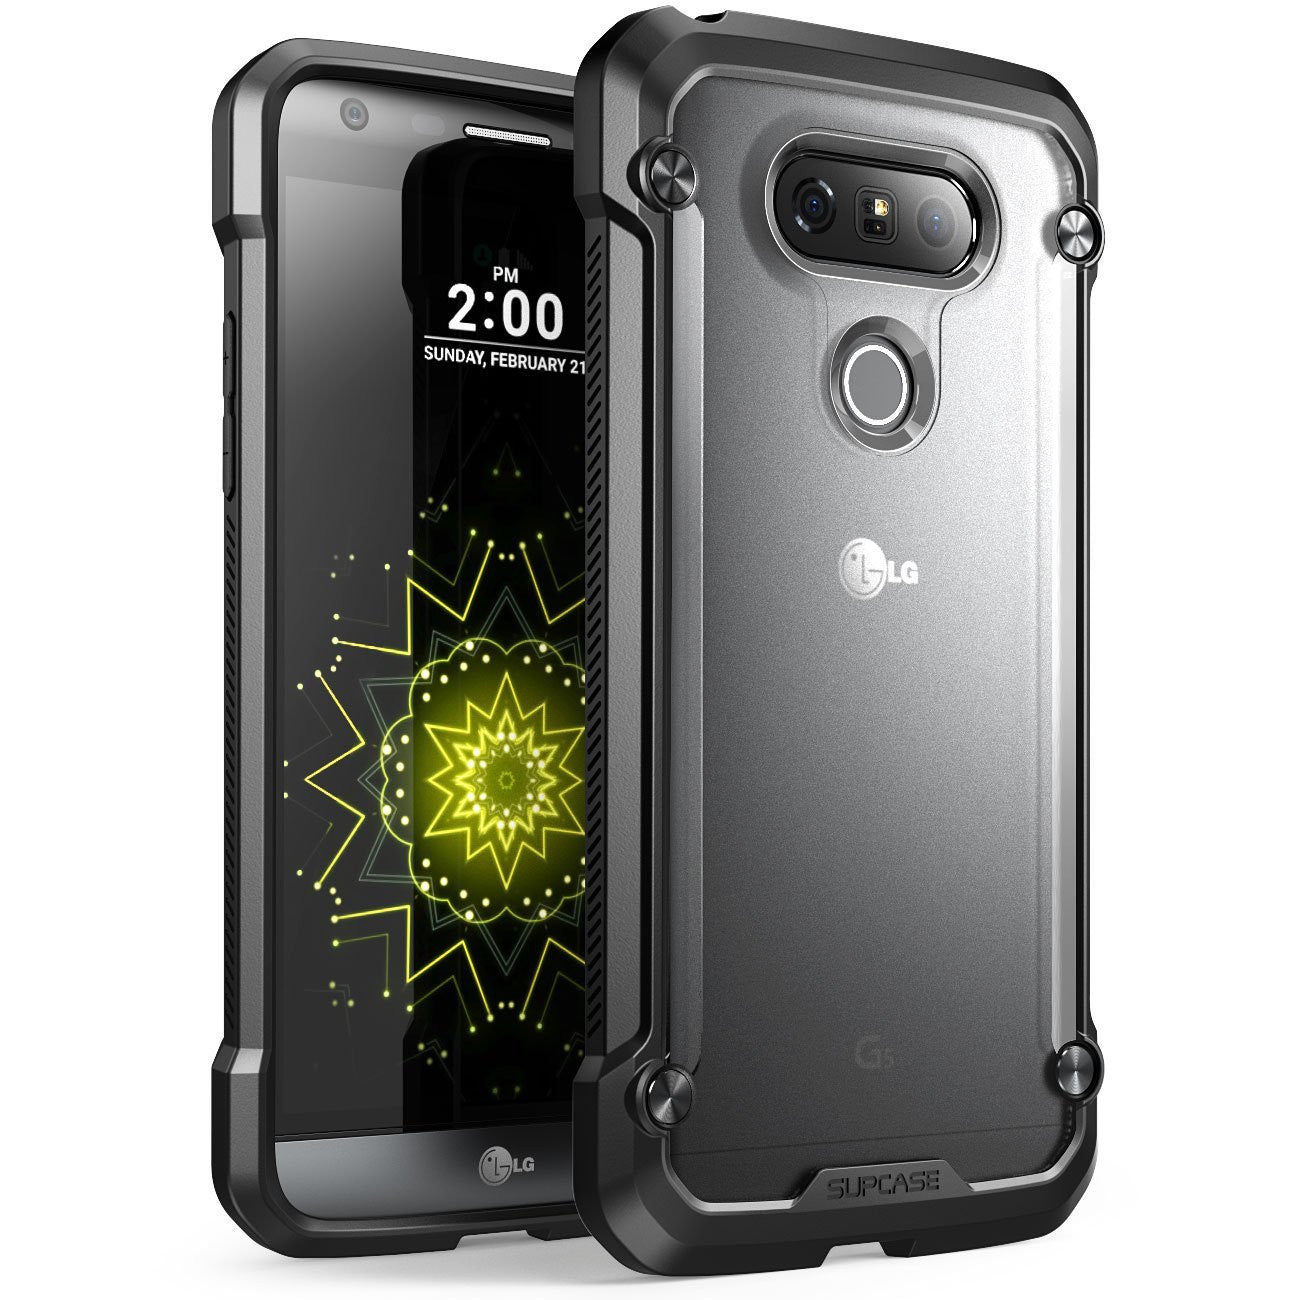 LG G5 Case Cover , Genuine SUPCASE Premium Hybrid Protective Case Cover